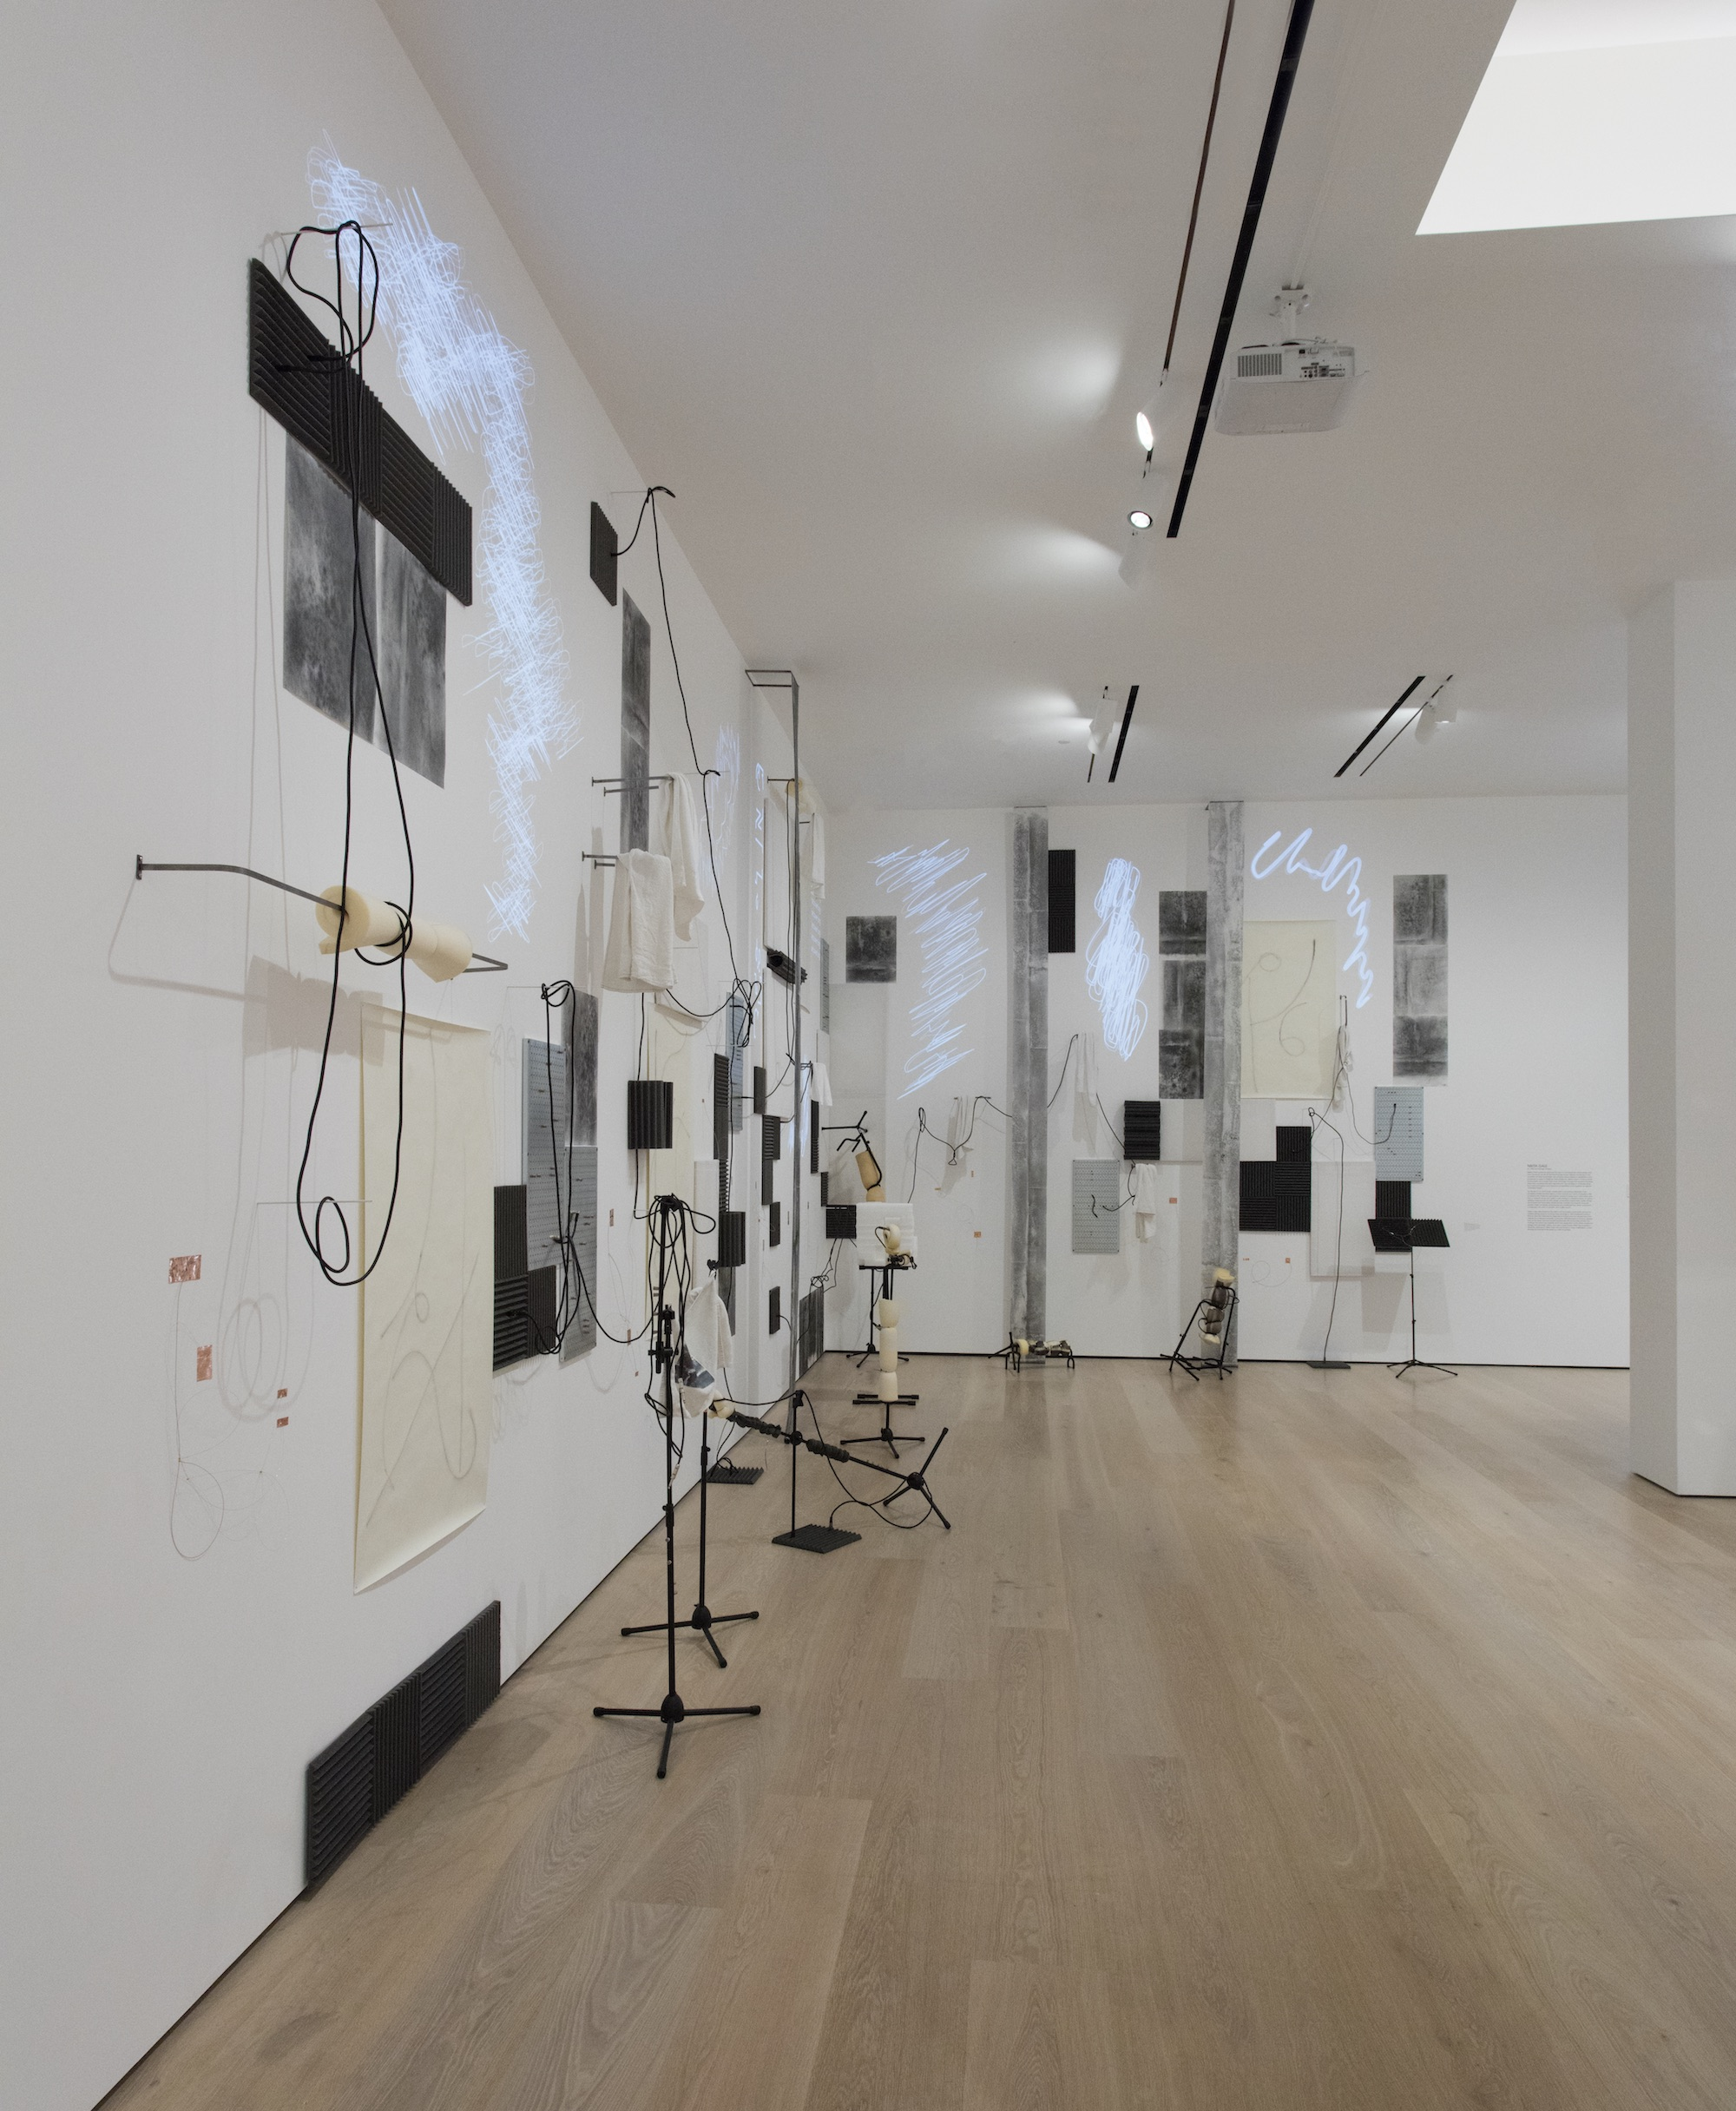 Nikita Gale, installation view, Made in L.A. 2018 , June 3 - September 2, 2018, Hammer Museum, Los Angeles. Photo: Brian Forrest